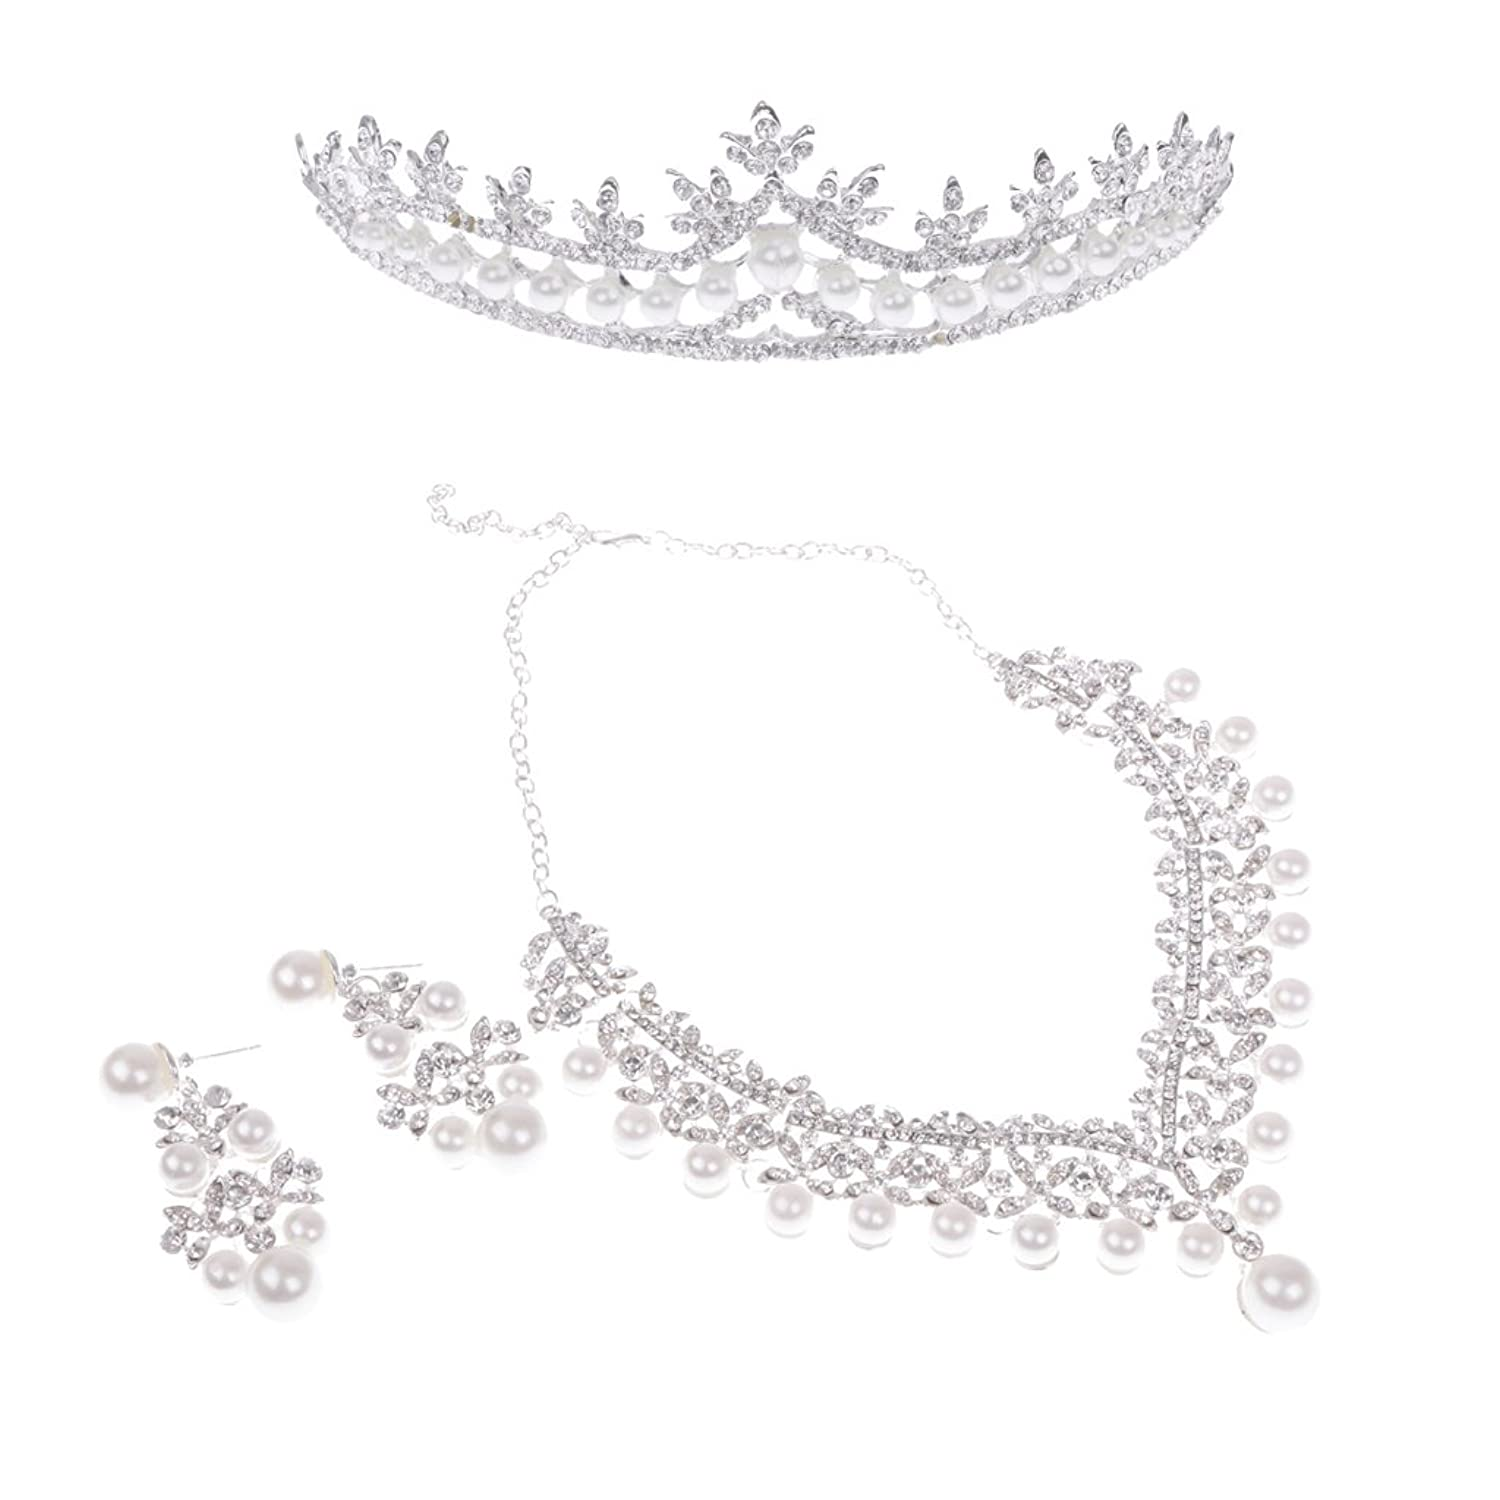 MagiDeal Luxury Crystal Pearls Necklace Earring Tiara Wedding Bride Party Jewelry Set